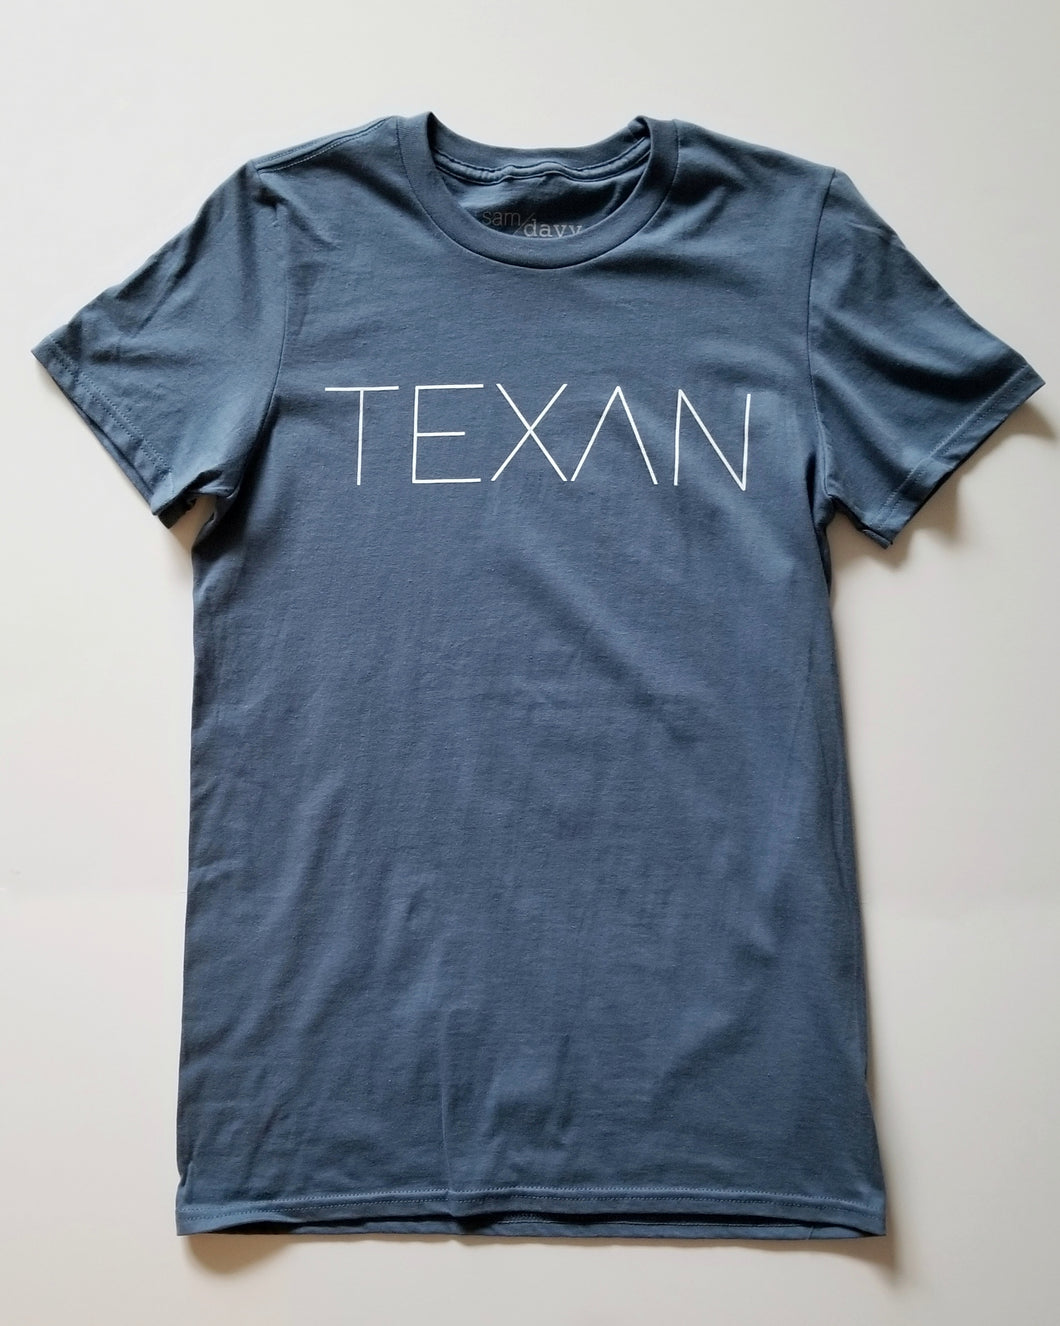 The Texan Pencil Tee (Unisex Blue/White)